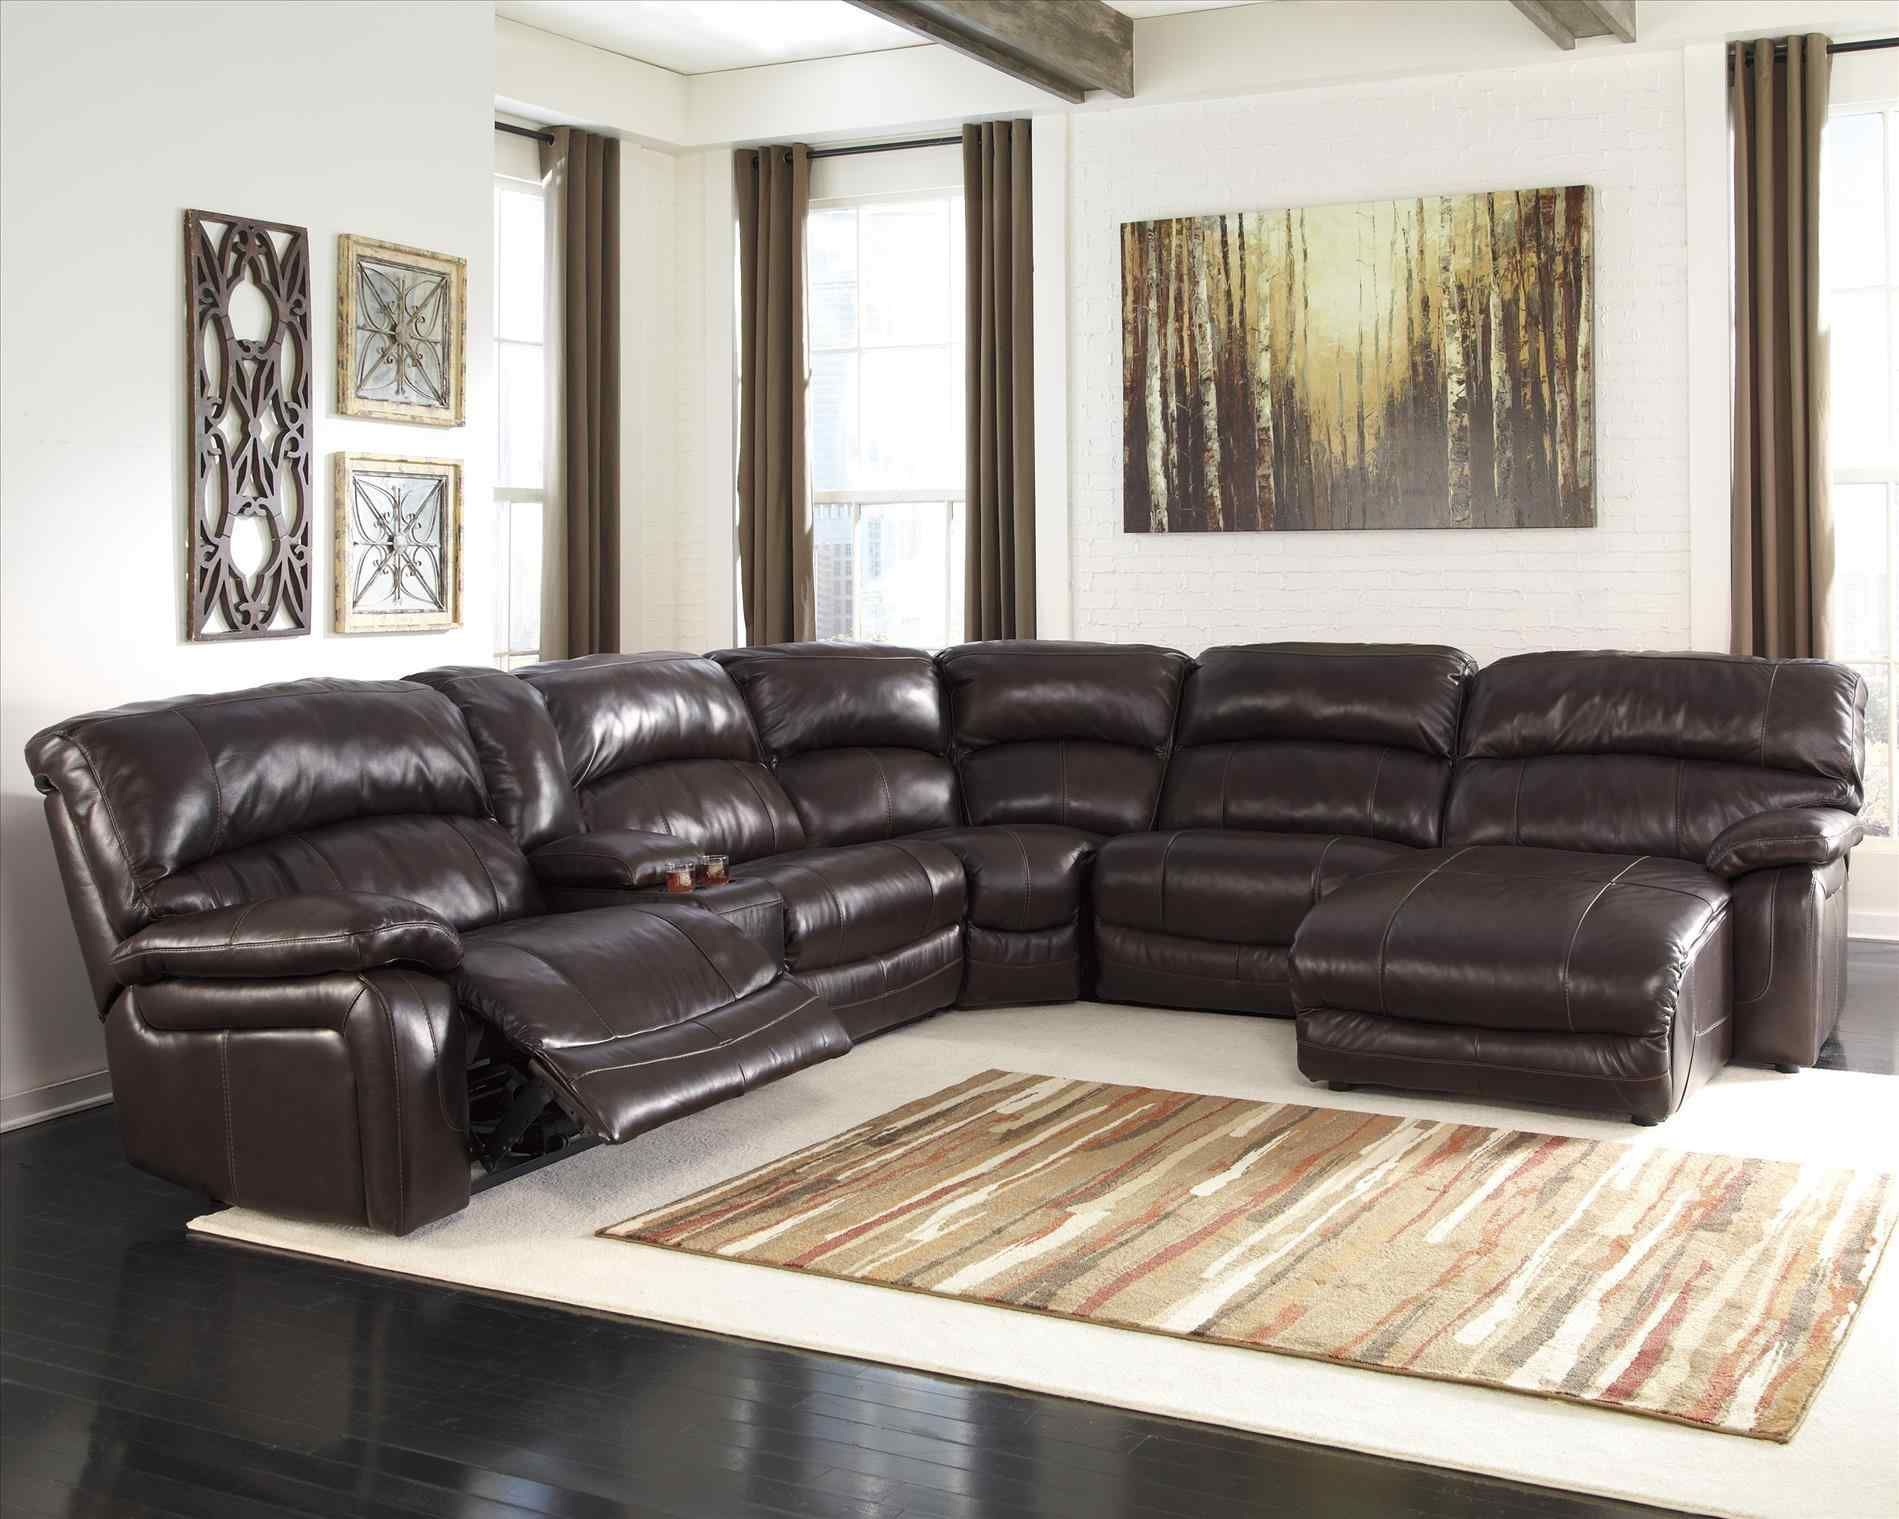 Prices Smoke Contemporary Piece With S Porter Table Media Console Ashley Furniture Sectional Sofa